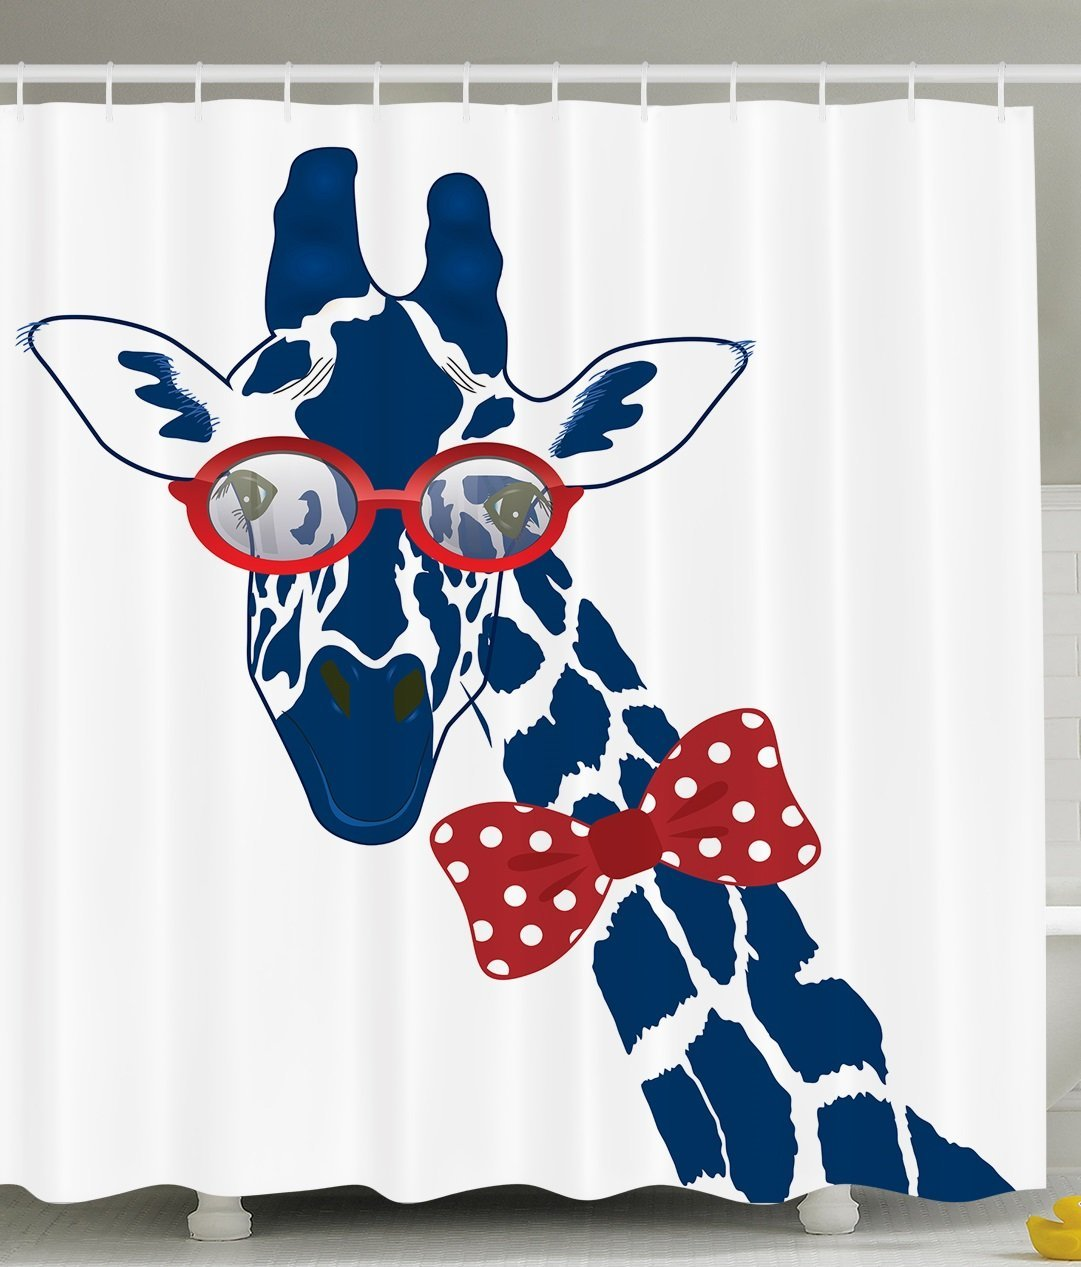 Warm Tour Funny Giraffe Hipster Sunglasses Bowtie Fashion Shower